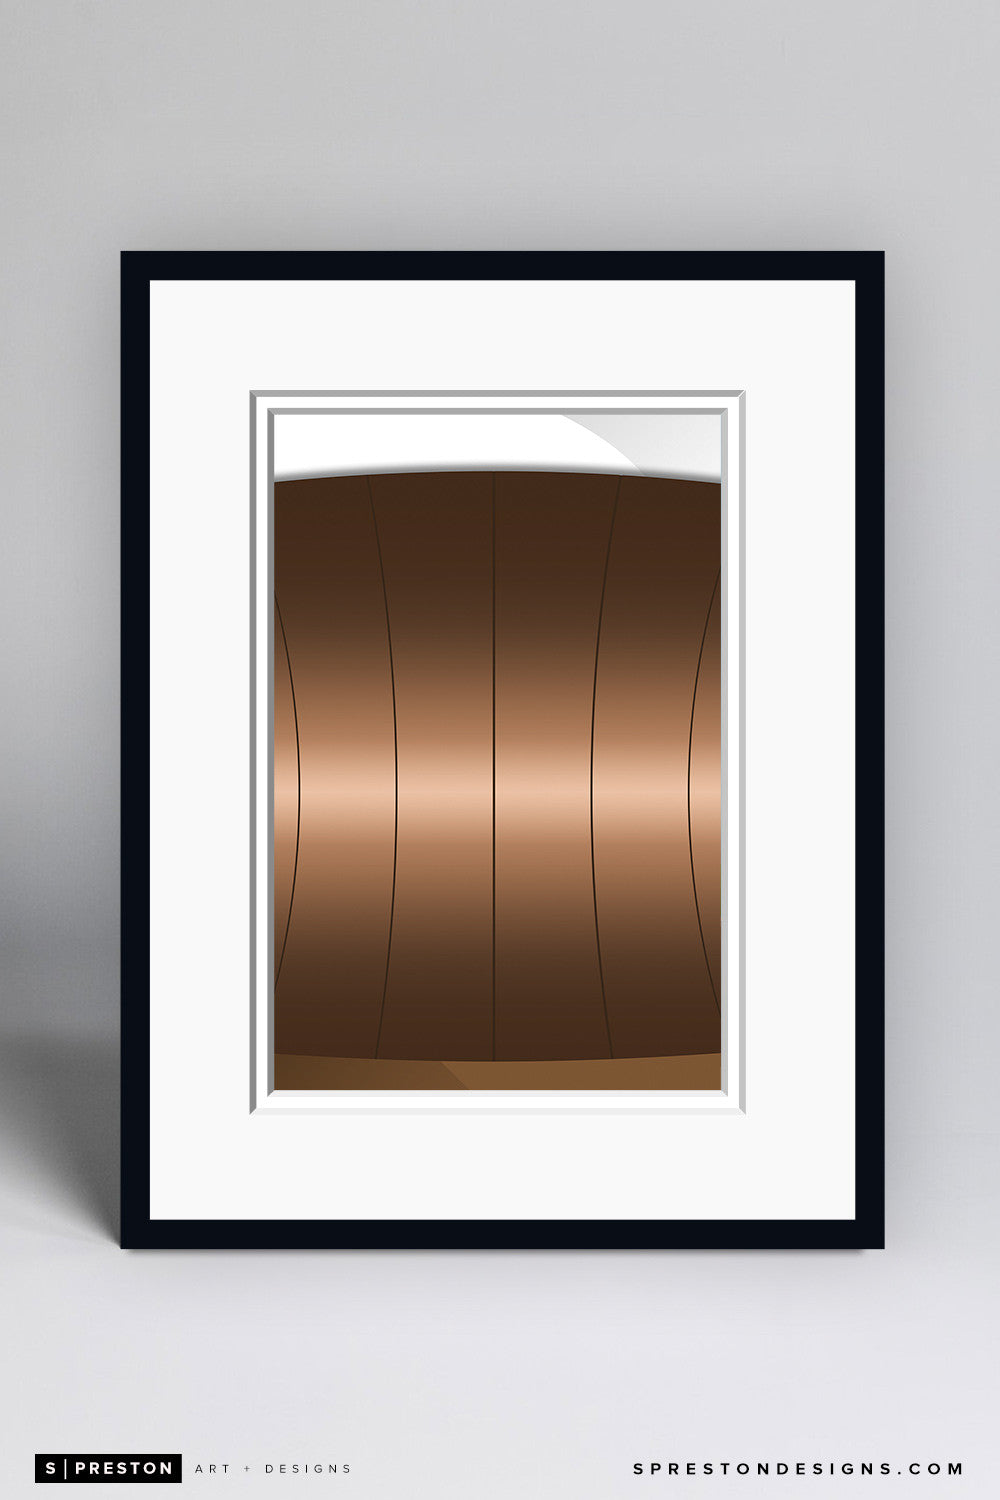 Minimalist Superdome Art Print - New Orleans Saints - S. Preston Art + Designs